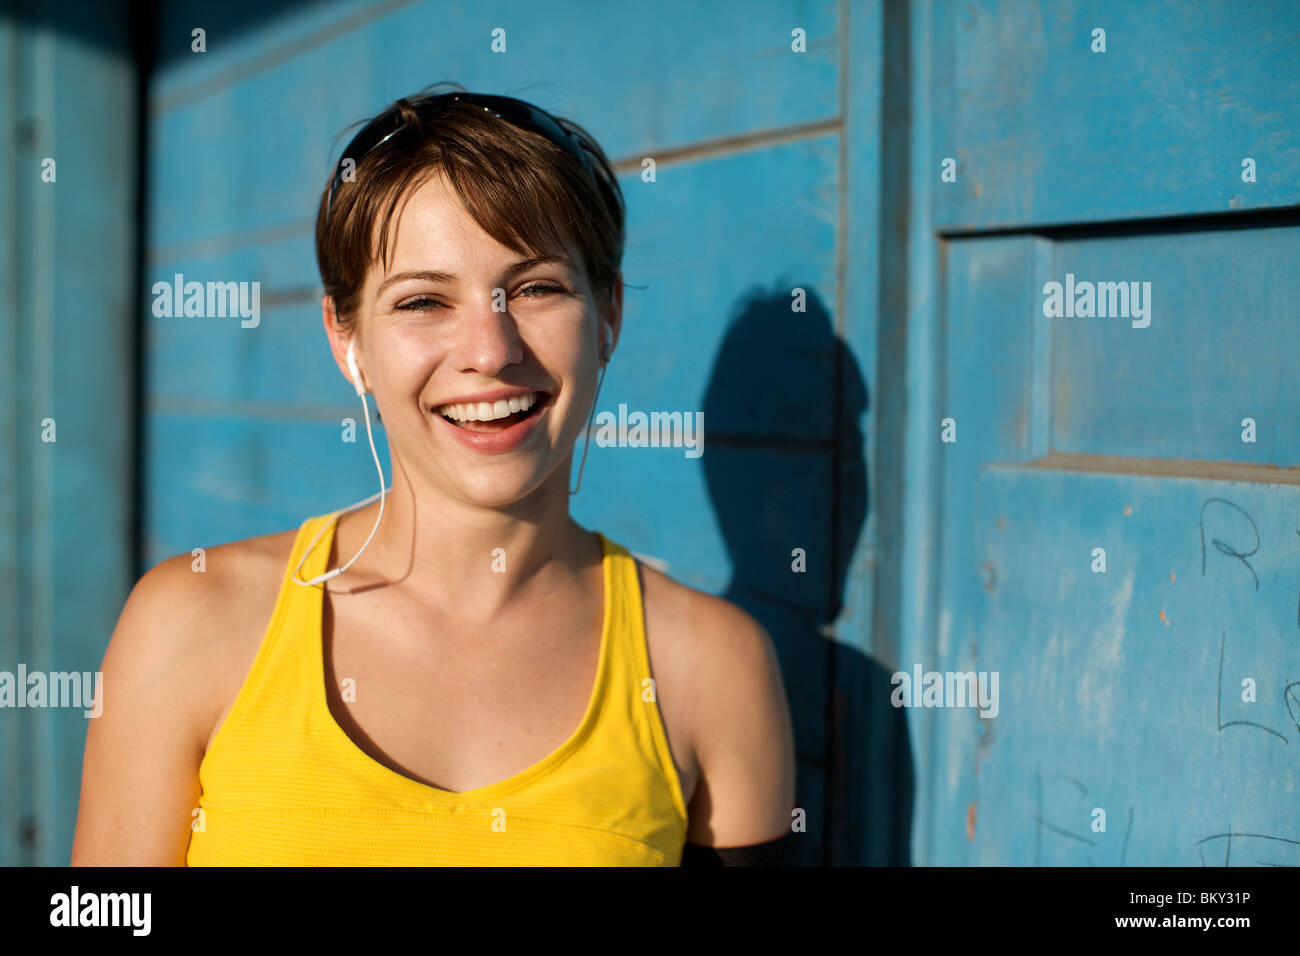 Woman in her late 20's wearing her workout clothes and headphones looks at the camera and smiles in San Diego, - Stock Image